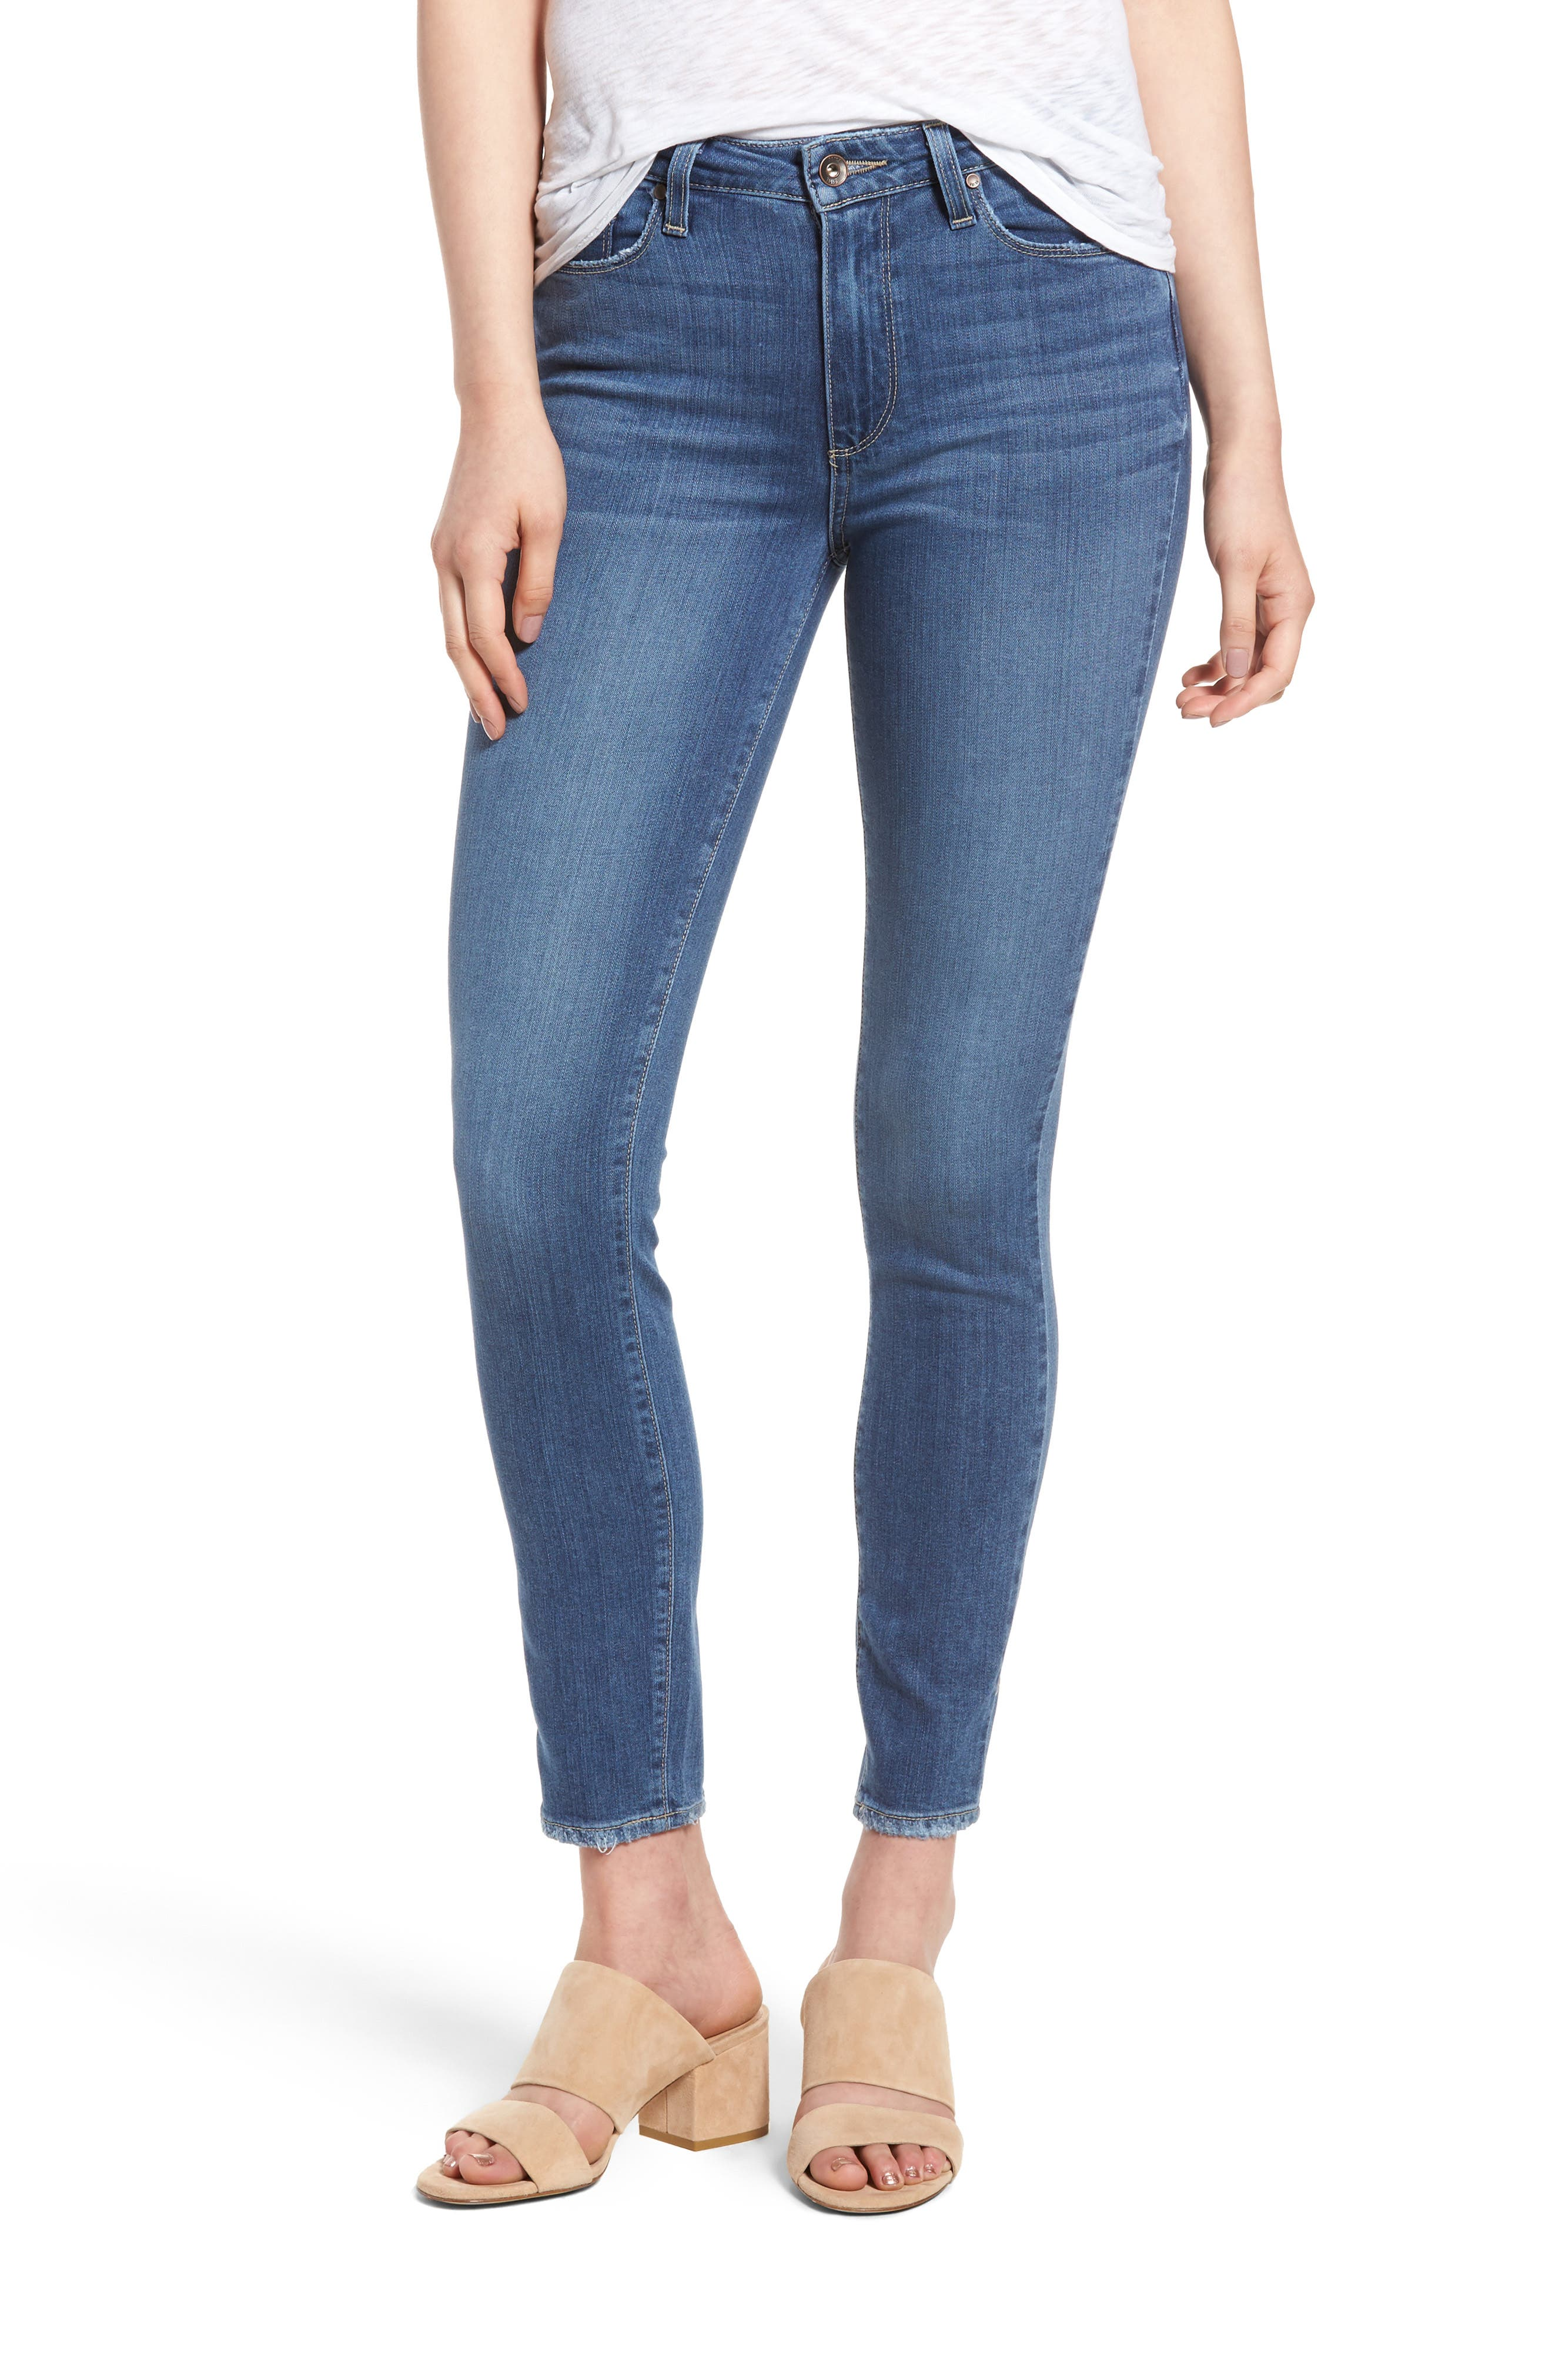 Hoxton High Waist Ankle Skinny Jeans,                         Main,                         color, Roman